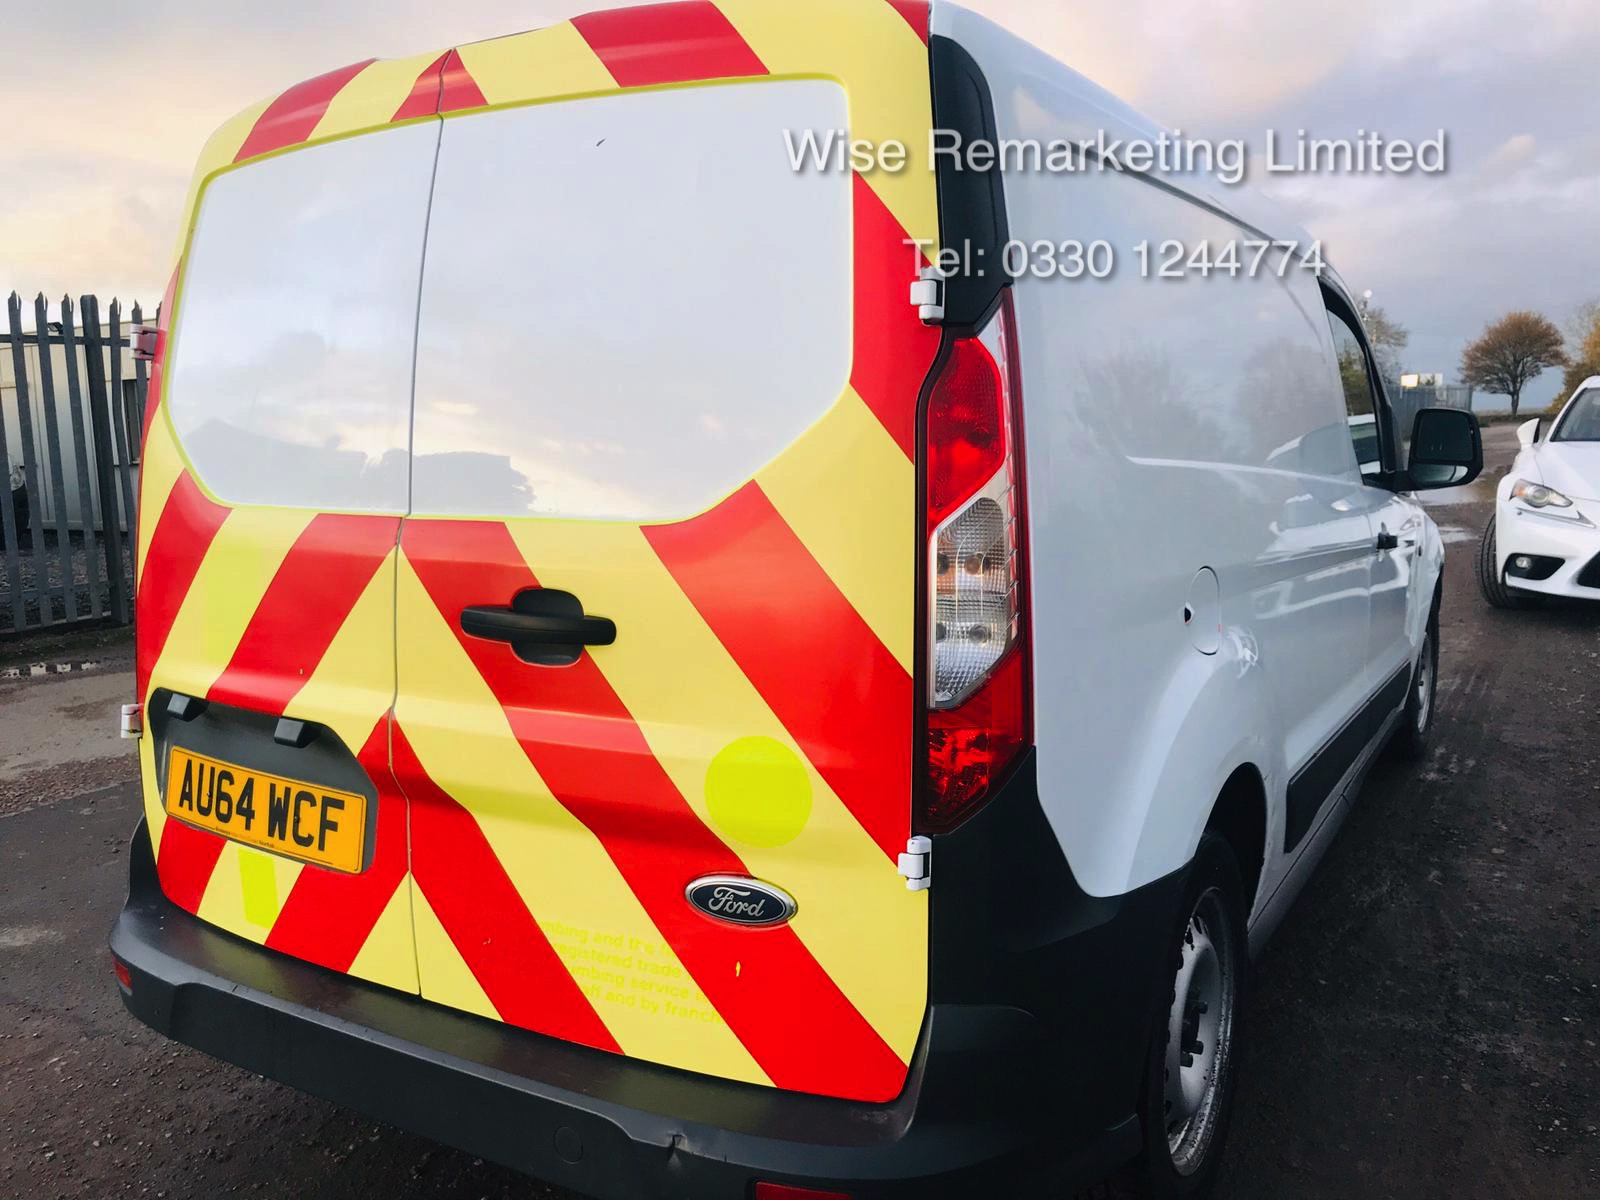 Ford Transit Connect 210 1.6 Eco-Tech LWB - 2015 Model - Service History - Ply Lined - Image 4 of 15